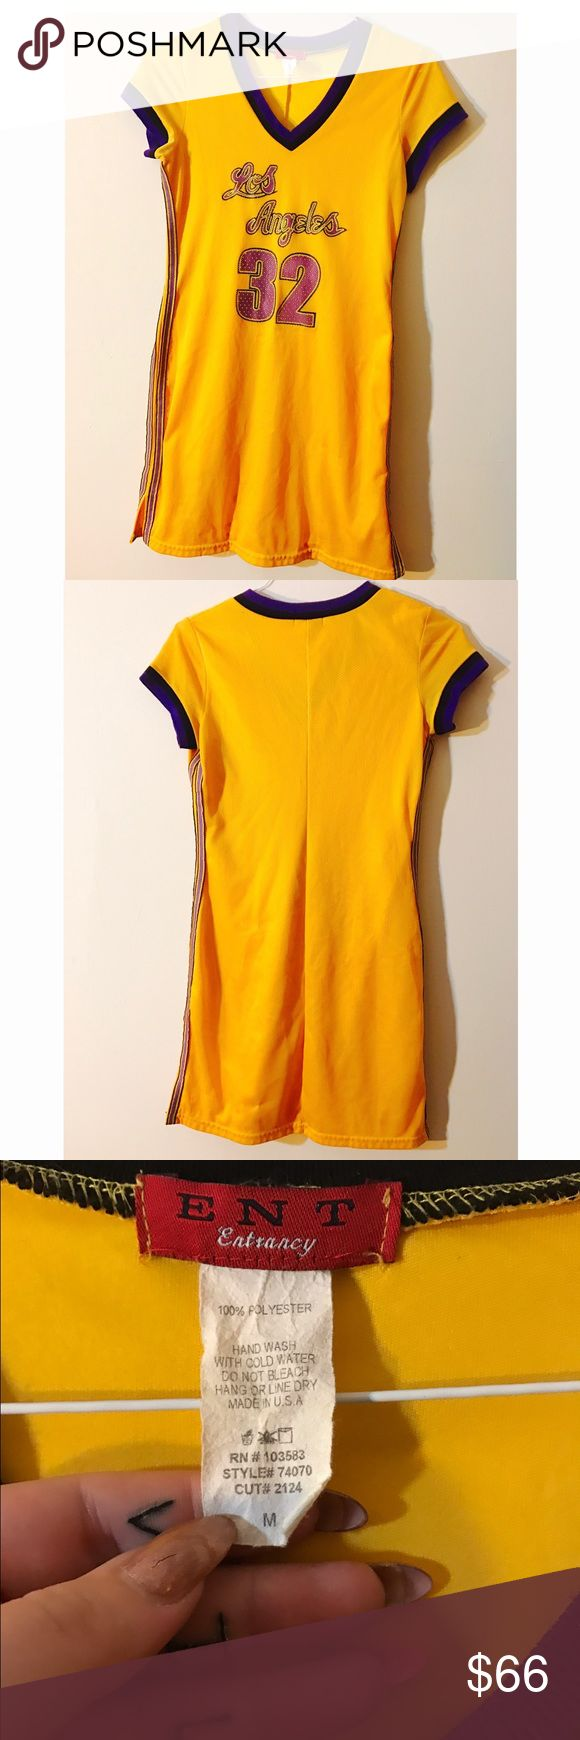 "Vintage 90s Yellow Jersey Dress Amazing, perfect, super awesome yellow 90s netted mesh jersey dress with stripes down the side. Says ""Los Angeles 32"" with purple elastic and v next. Rare and hard to find!! Lakers LA basketball jersey dress trendsetter Lebron Vintage Dresses"